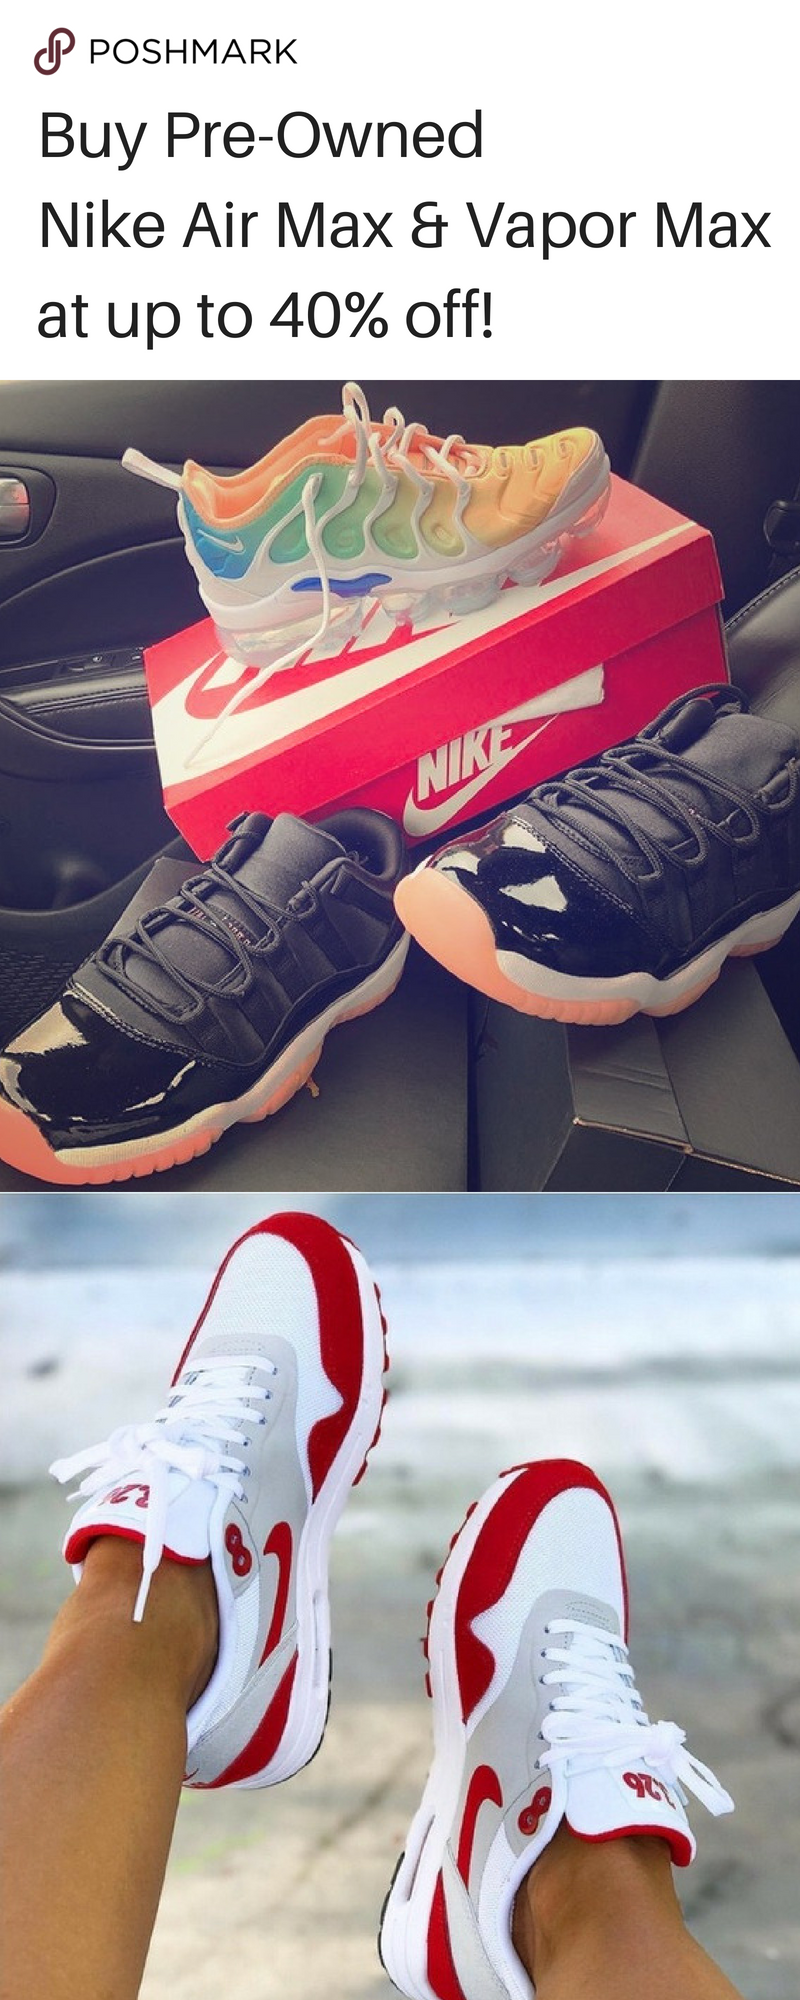 b33ba475fd56 Find limited edition Nike Air Max and Vapor Max up to 40% off on Poshmark!  Install the app for Free now.